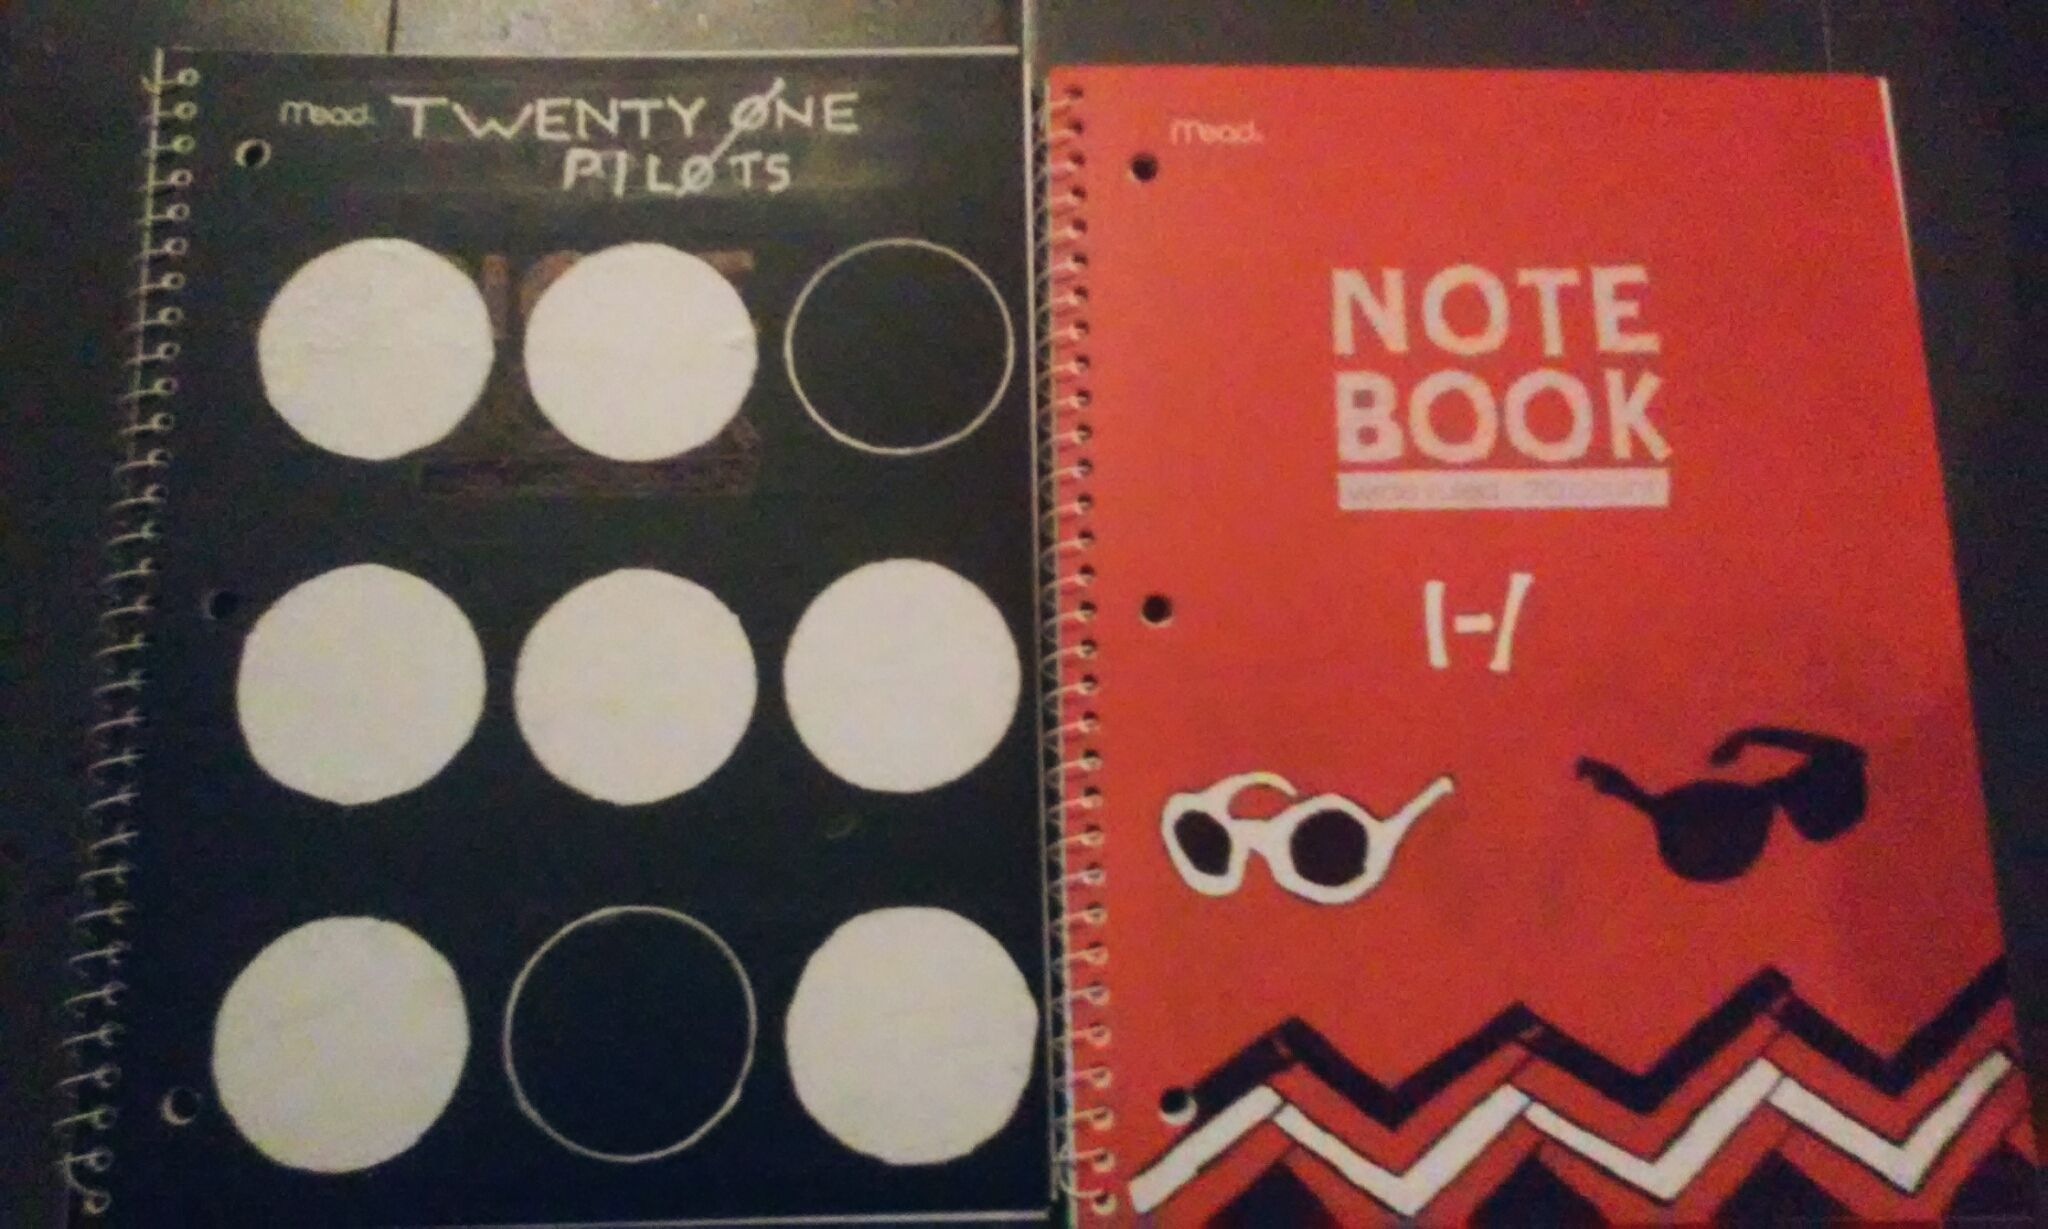 Well I fixed up my notebooks and they came out alright. |-/